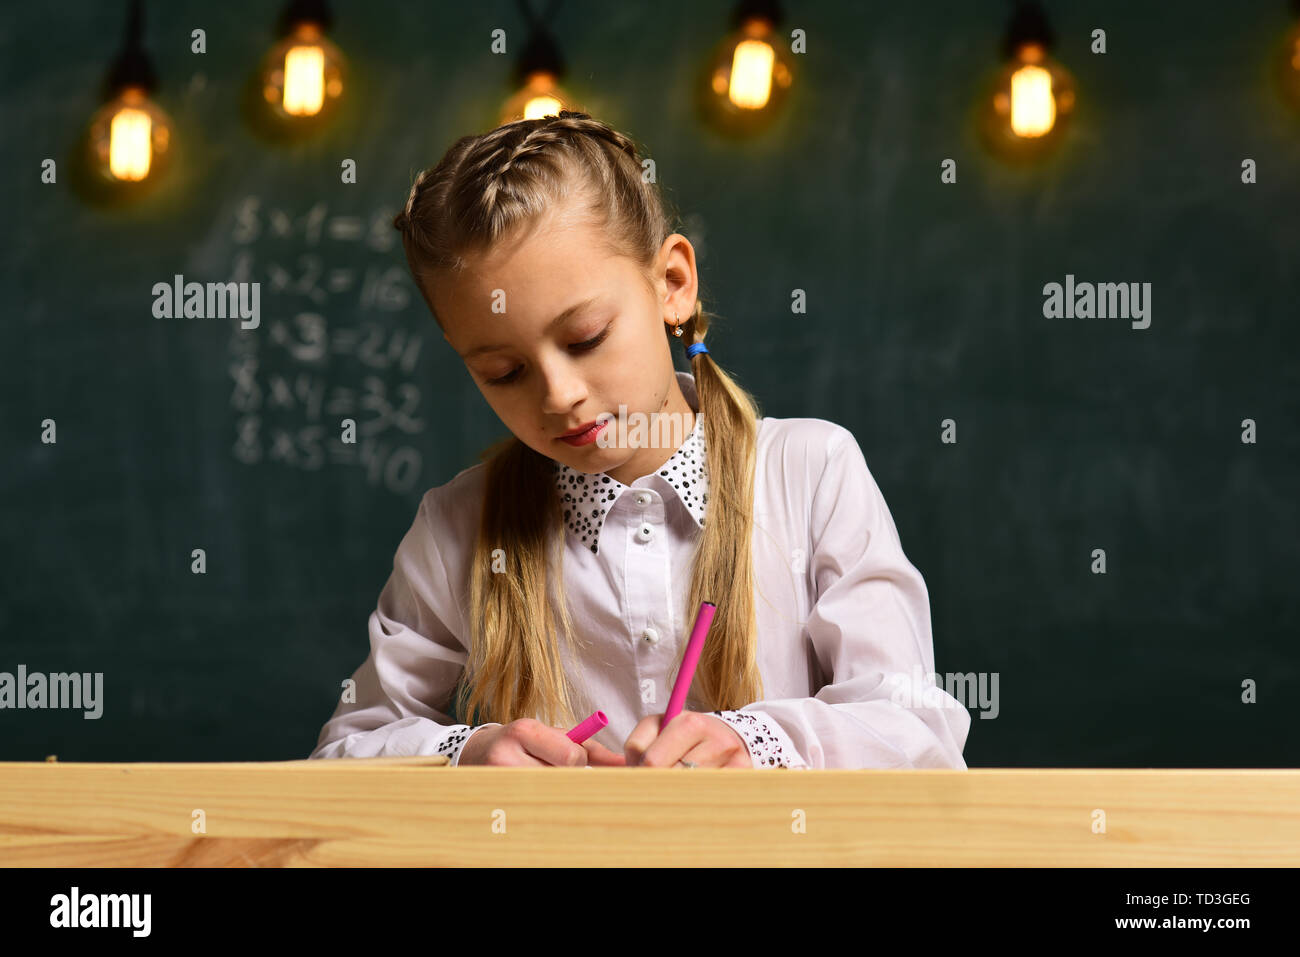 creativity and art. creativity and art of little girl. creativity in art school lesson. girl has creativity and art skills. just do it. - Stock Image